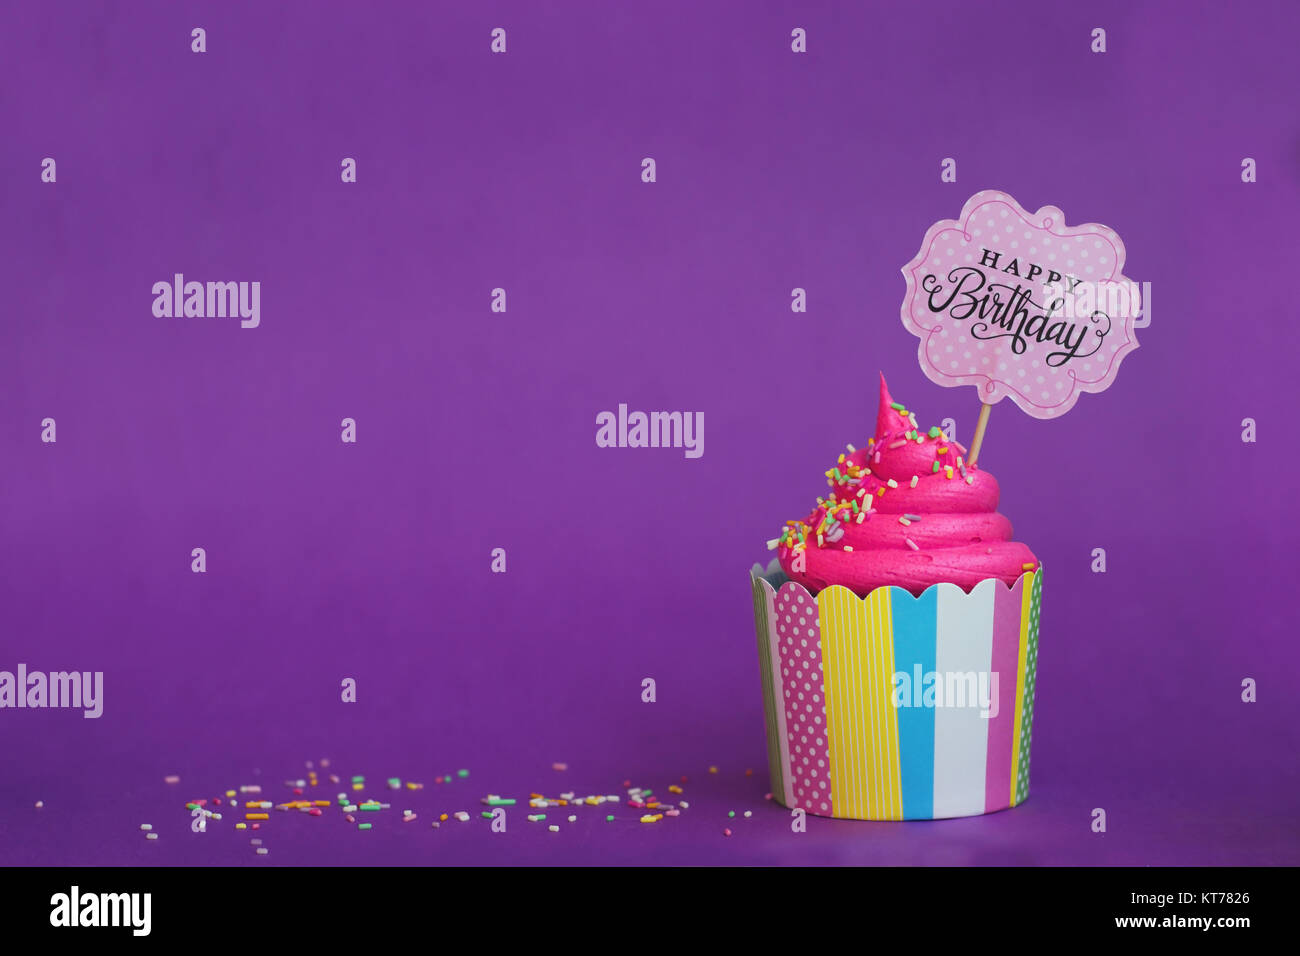 how to make happy birthday banner for cake